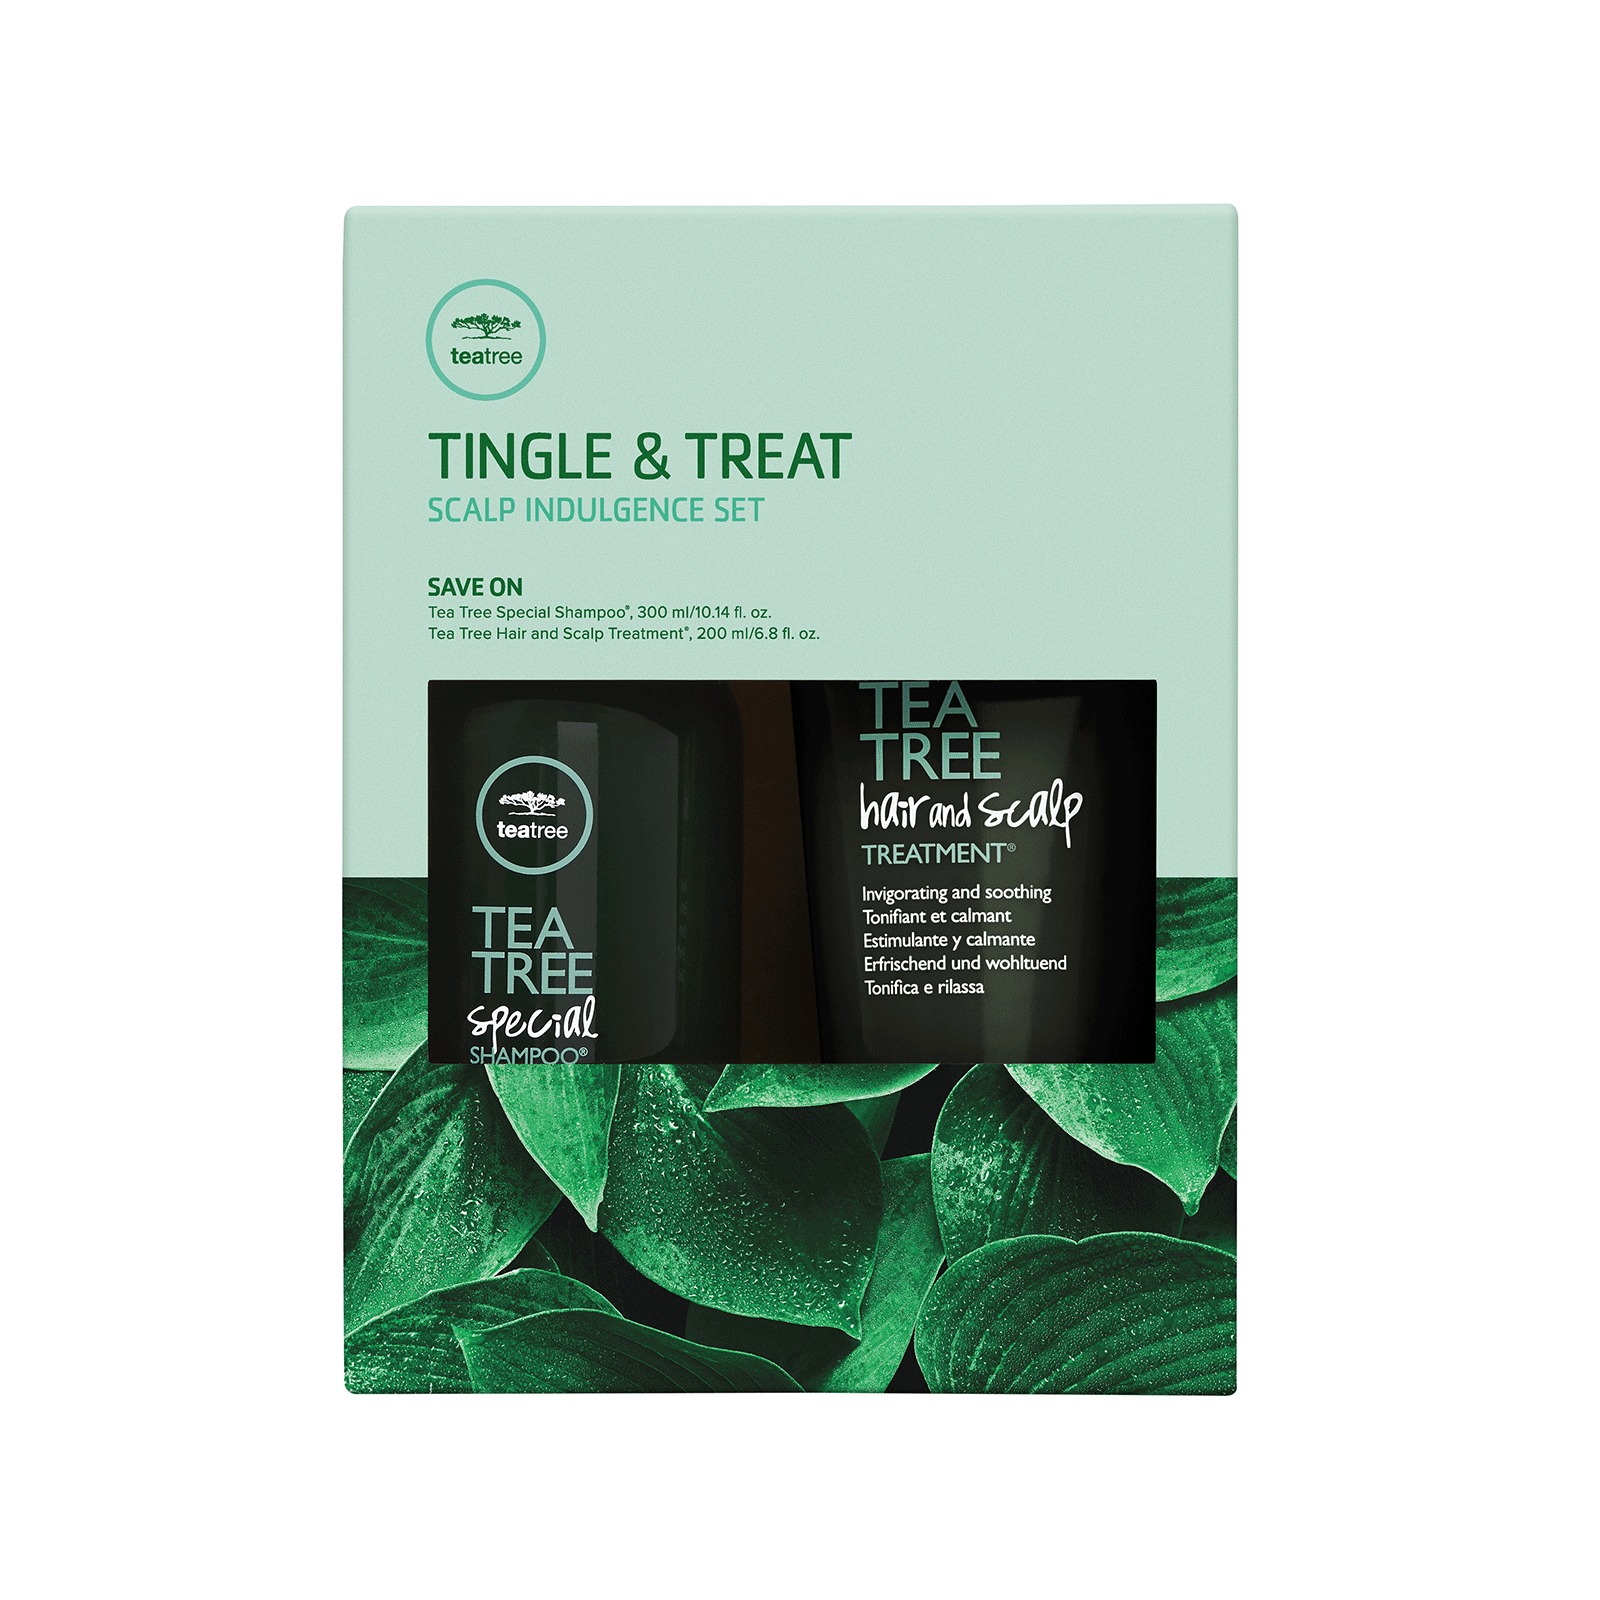 Tea Tree Special Shampoo, Hair & Scalp Treatment